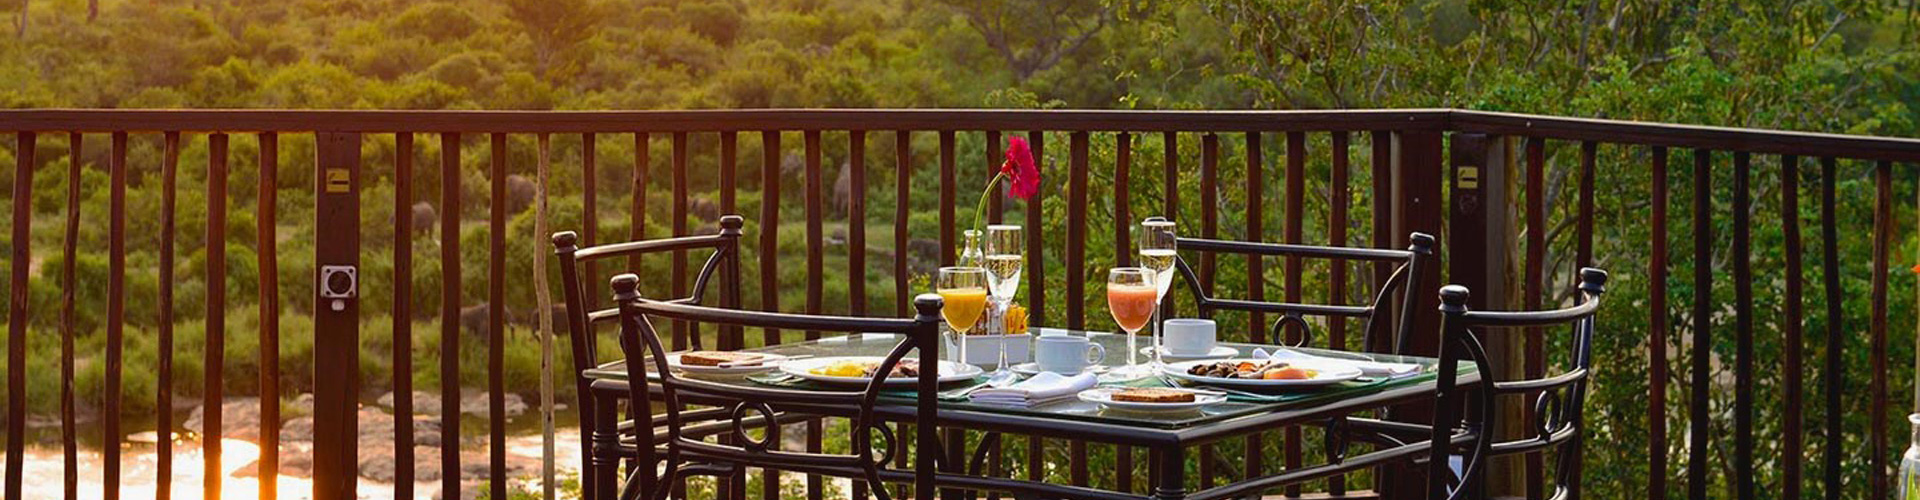 pestana-kruger-lodge-intimate-dining